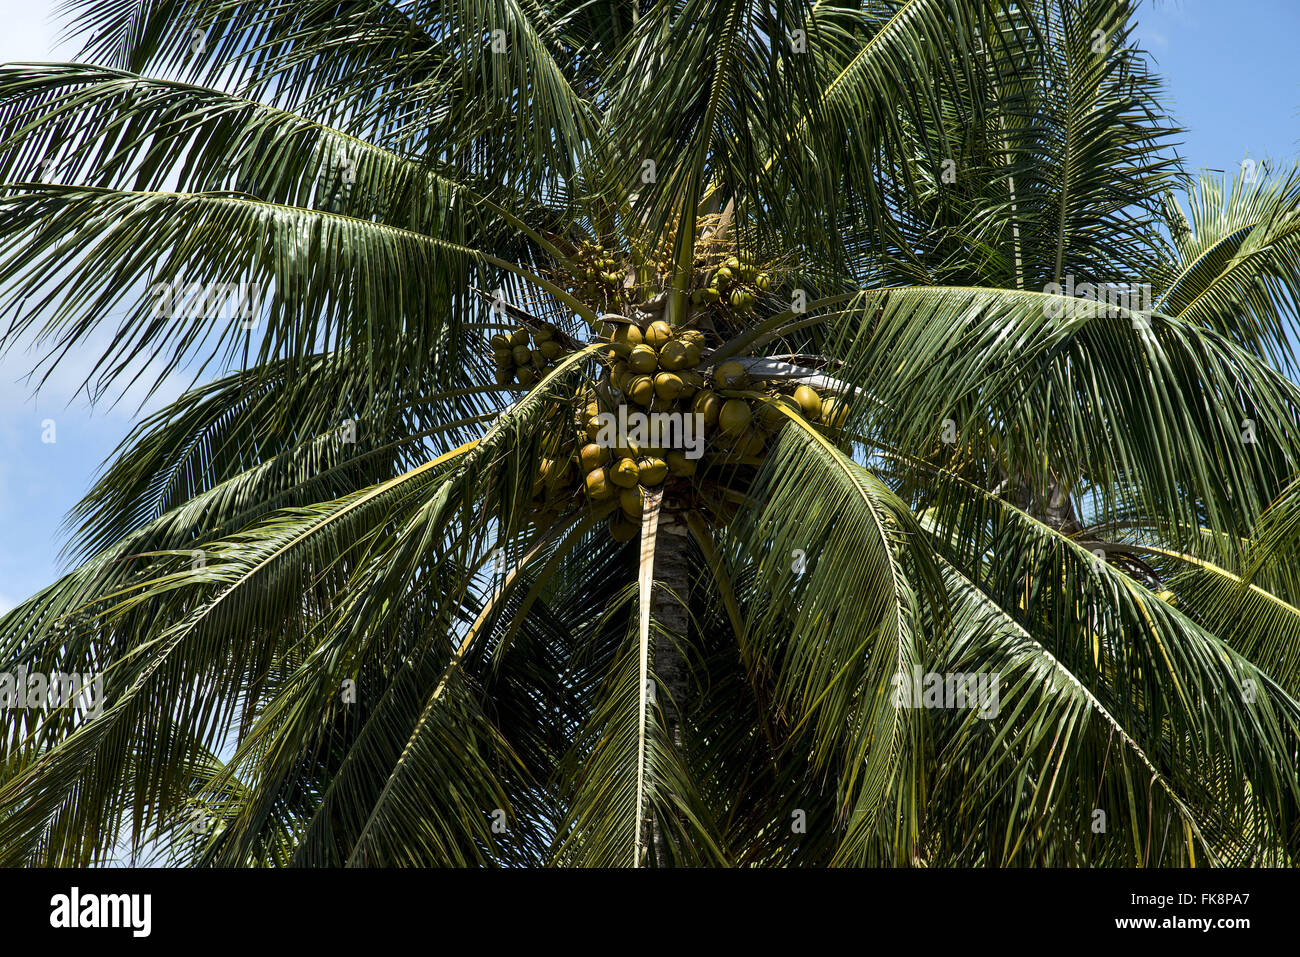 Coconut tree with fruit - South Coast state - Stock Image